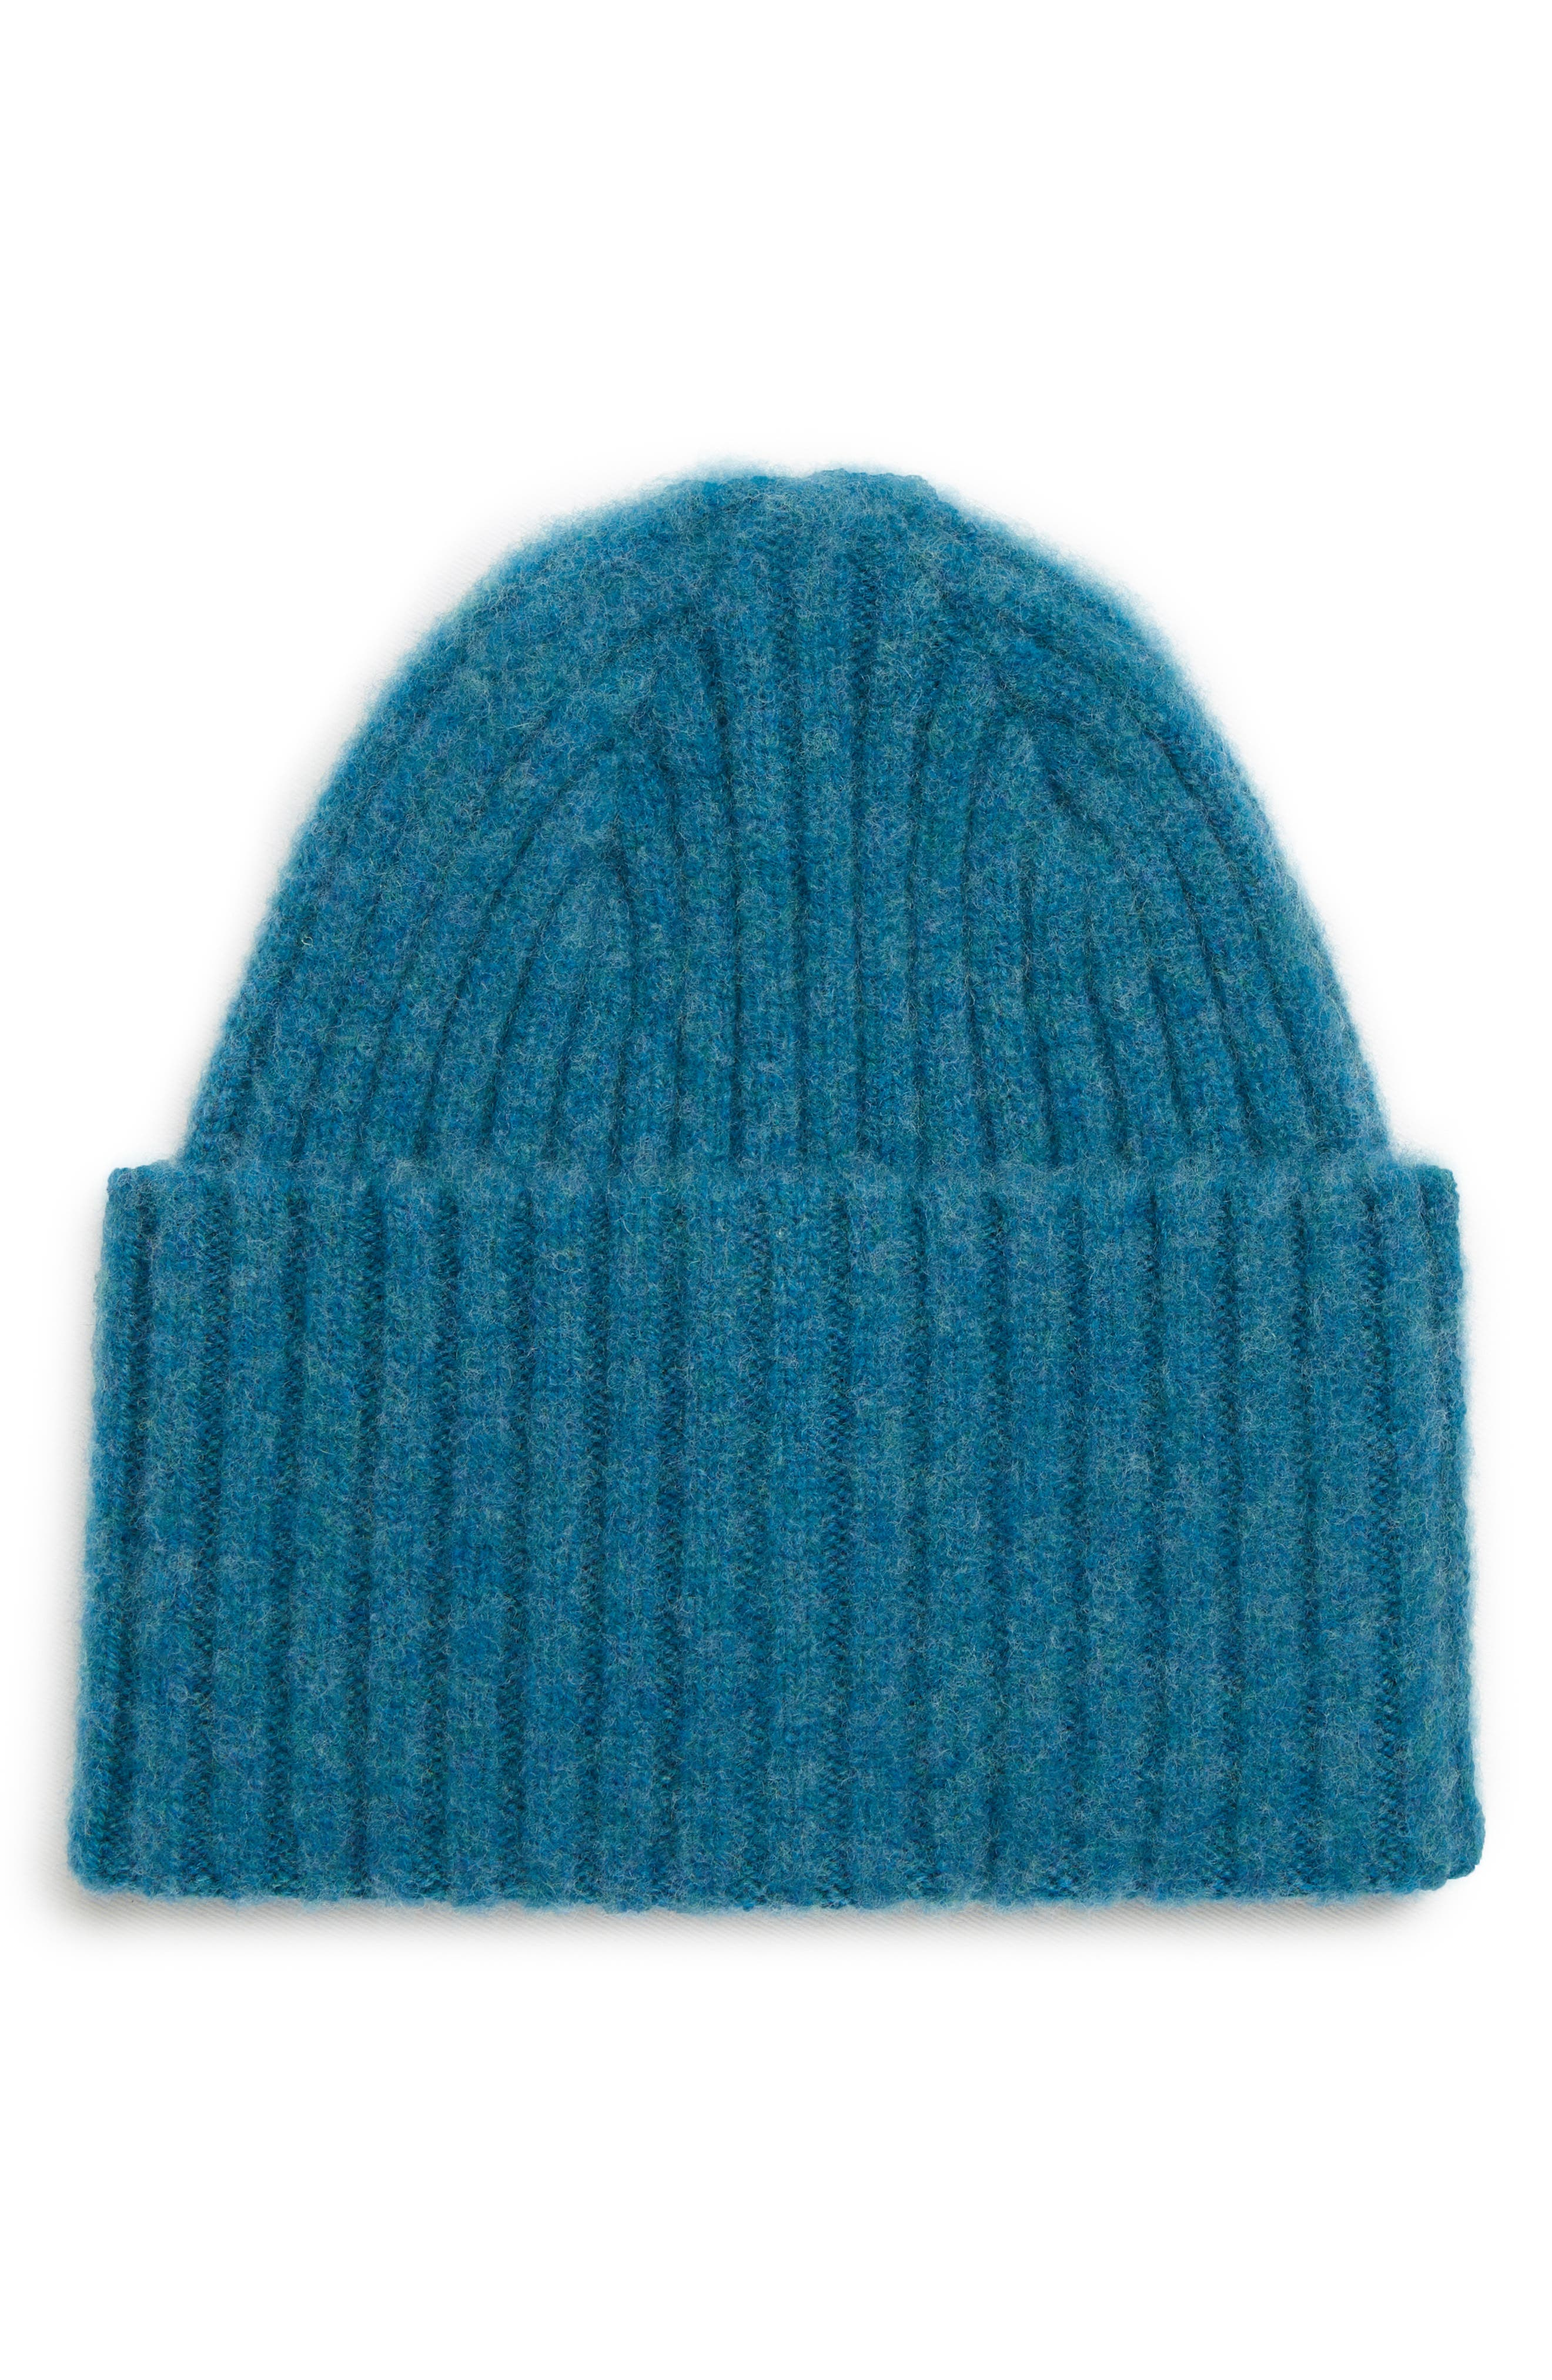 Drakes Brushed Wool Beanie,                         Main,                         color, BLUE